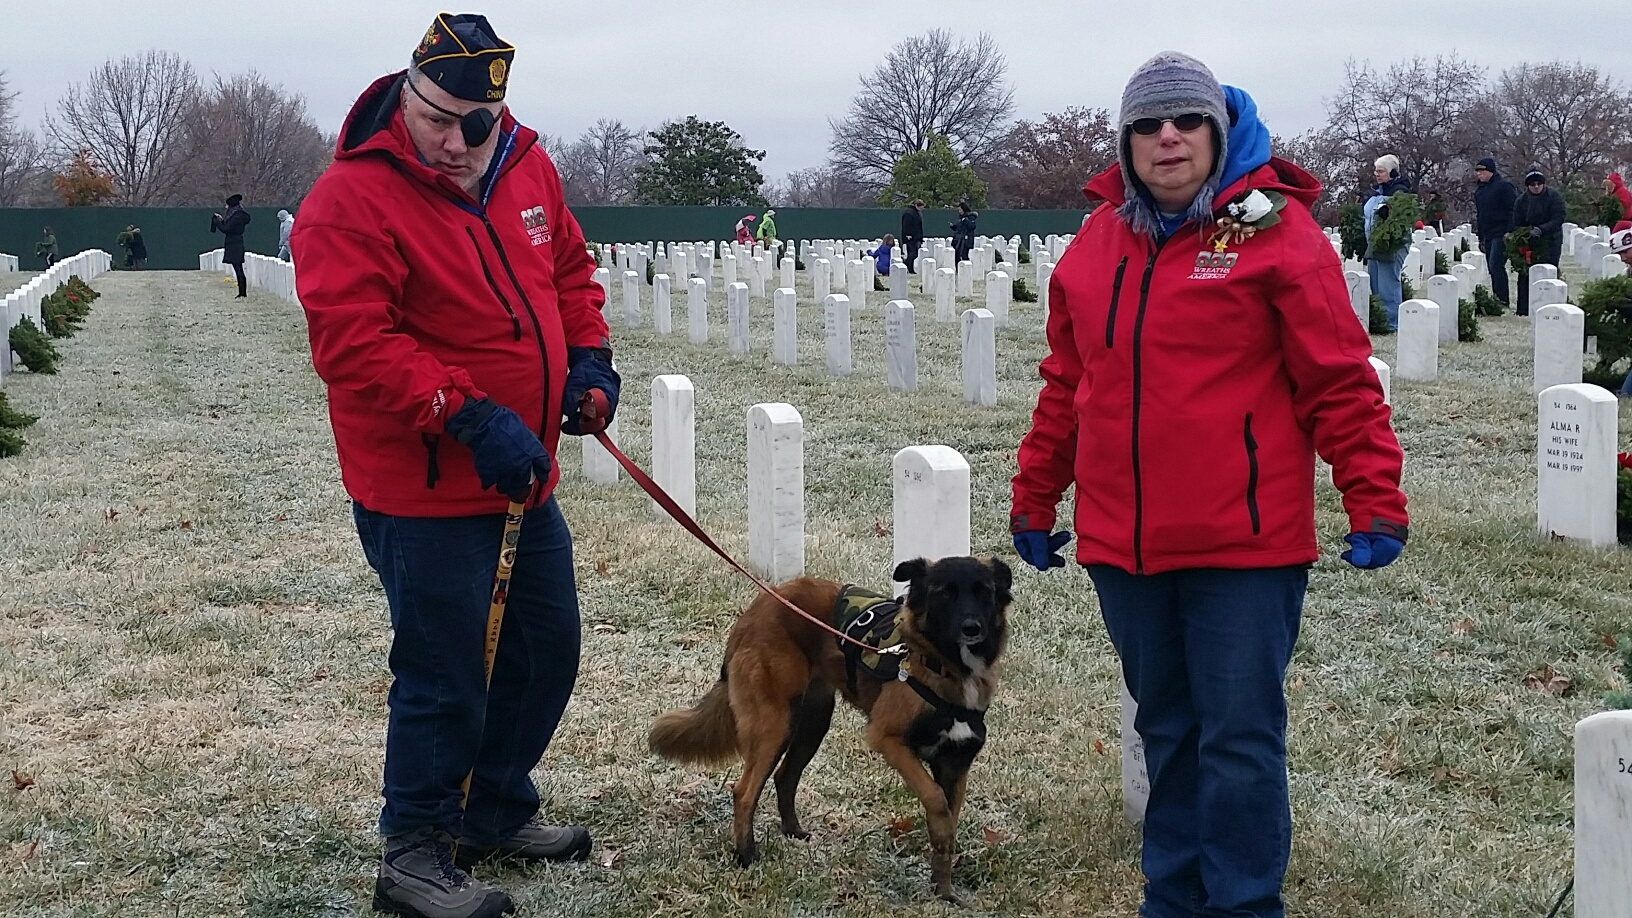 44,000 volunteers visited Arlington National Cemetery to participate in the Wreaths Across America ceremony to honor veterans Saturday, Dec. 17, 2016. (WTOP Kathy Stewart)